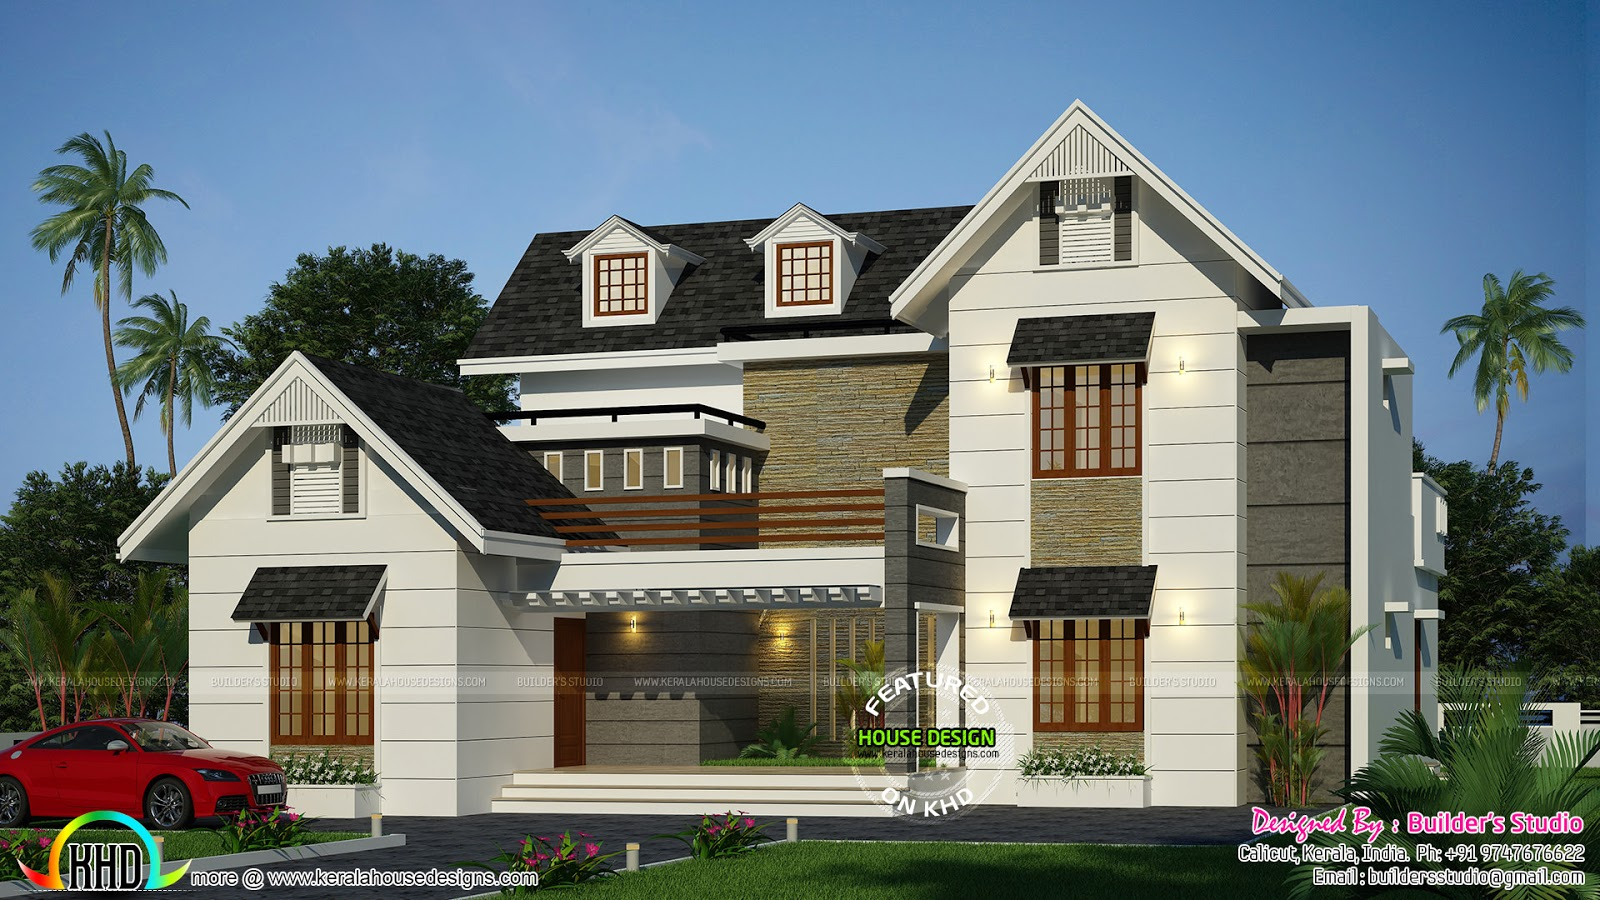 Modern dormer window home architecture kerala home for Dormer house plans designs